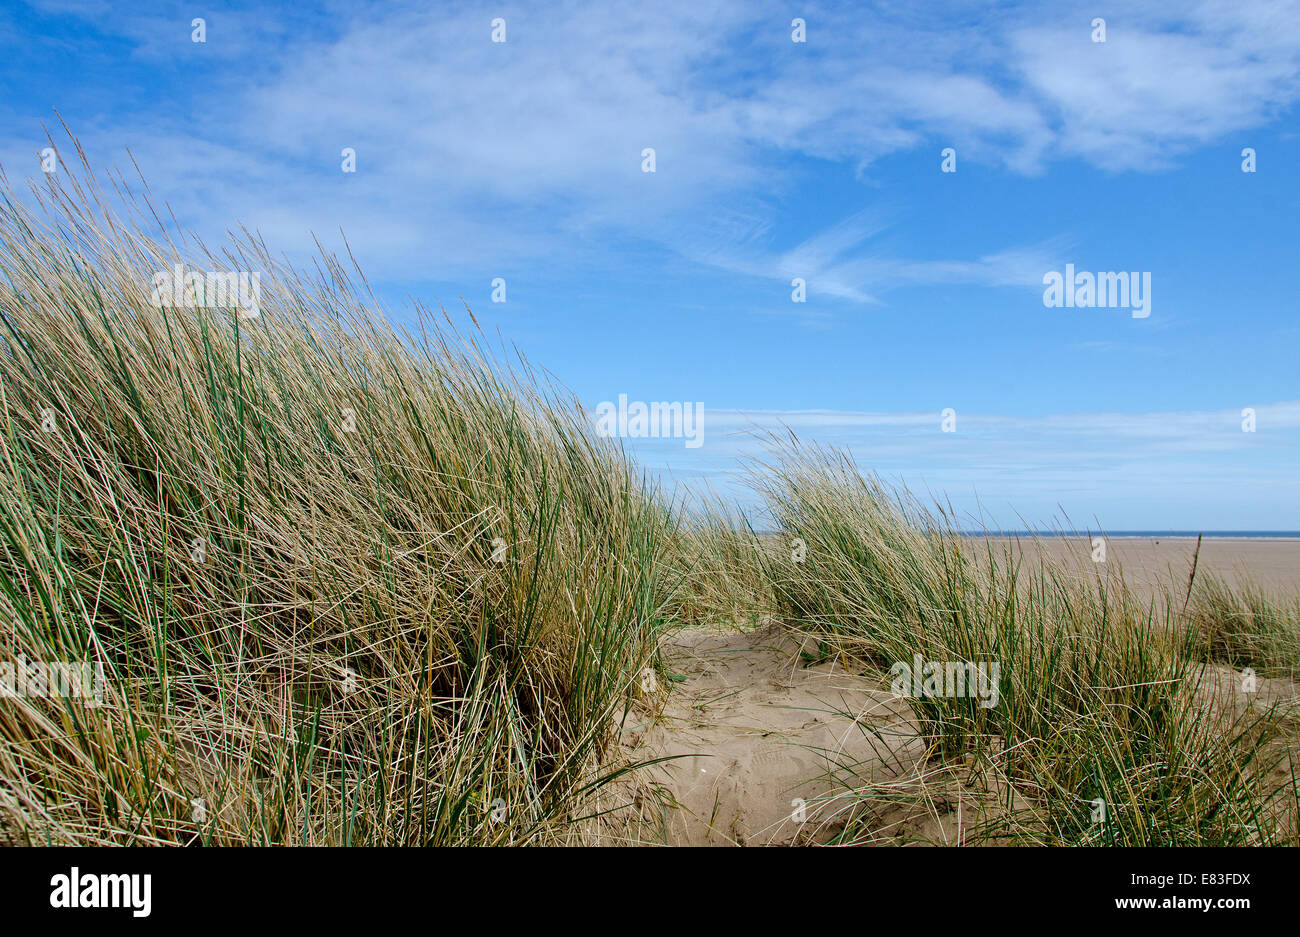 Sand Dune with Marram Grass against a beautiful blue sky. - Stock Image